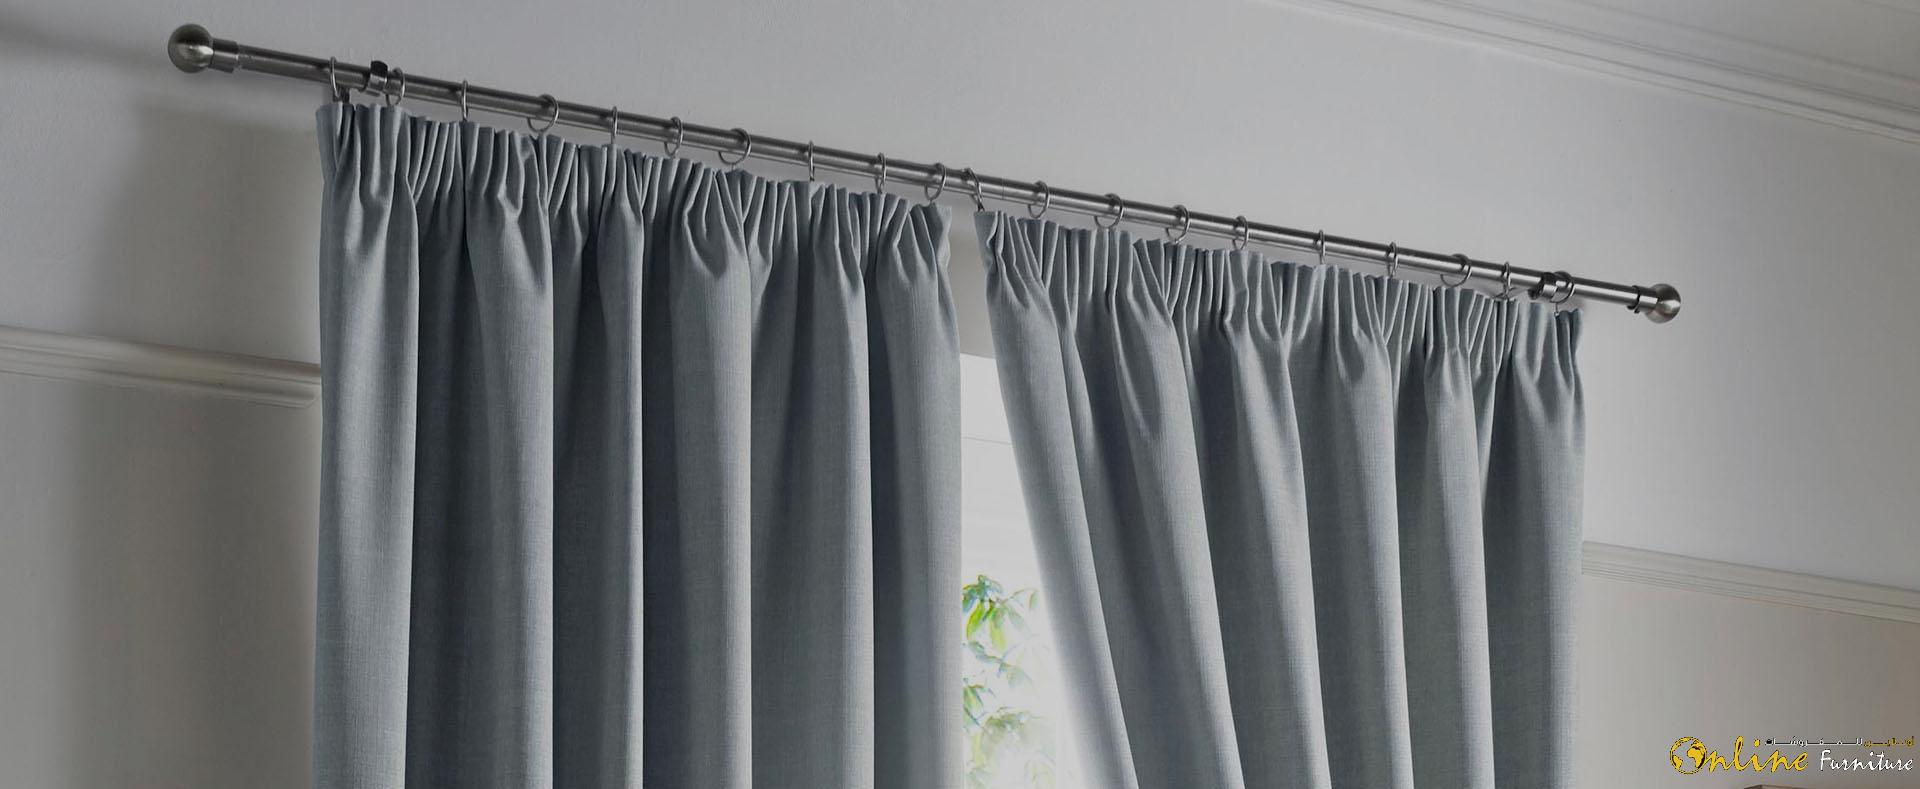 CURTAIN FITTING AND INSTALLATION